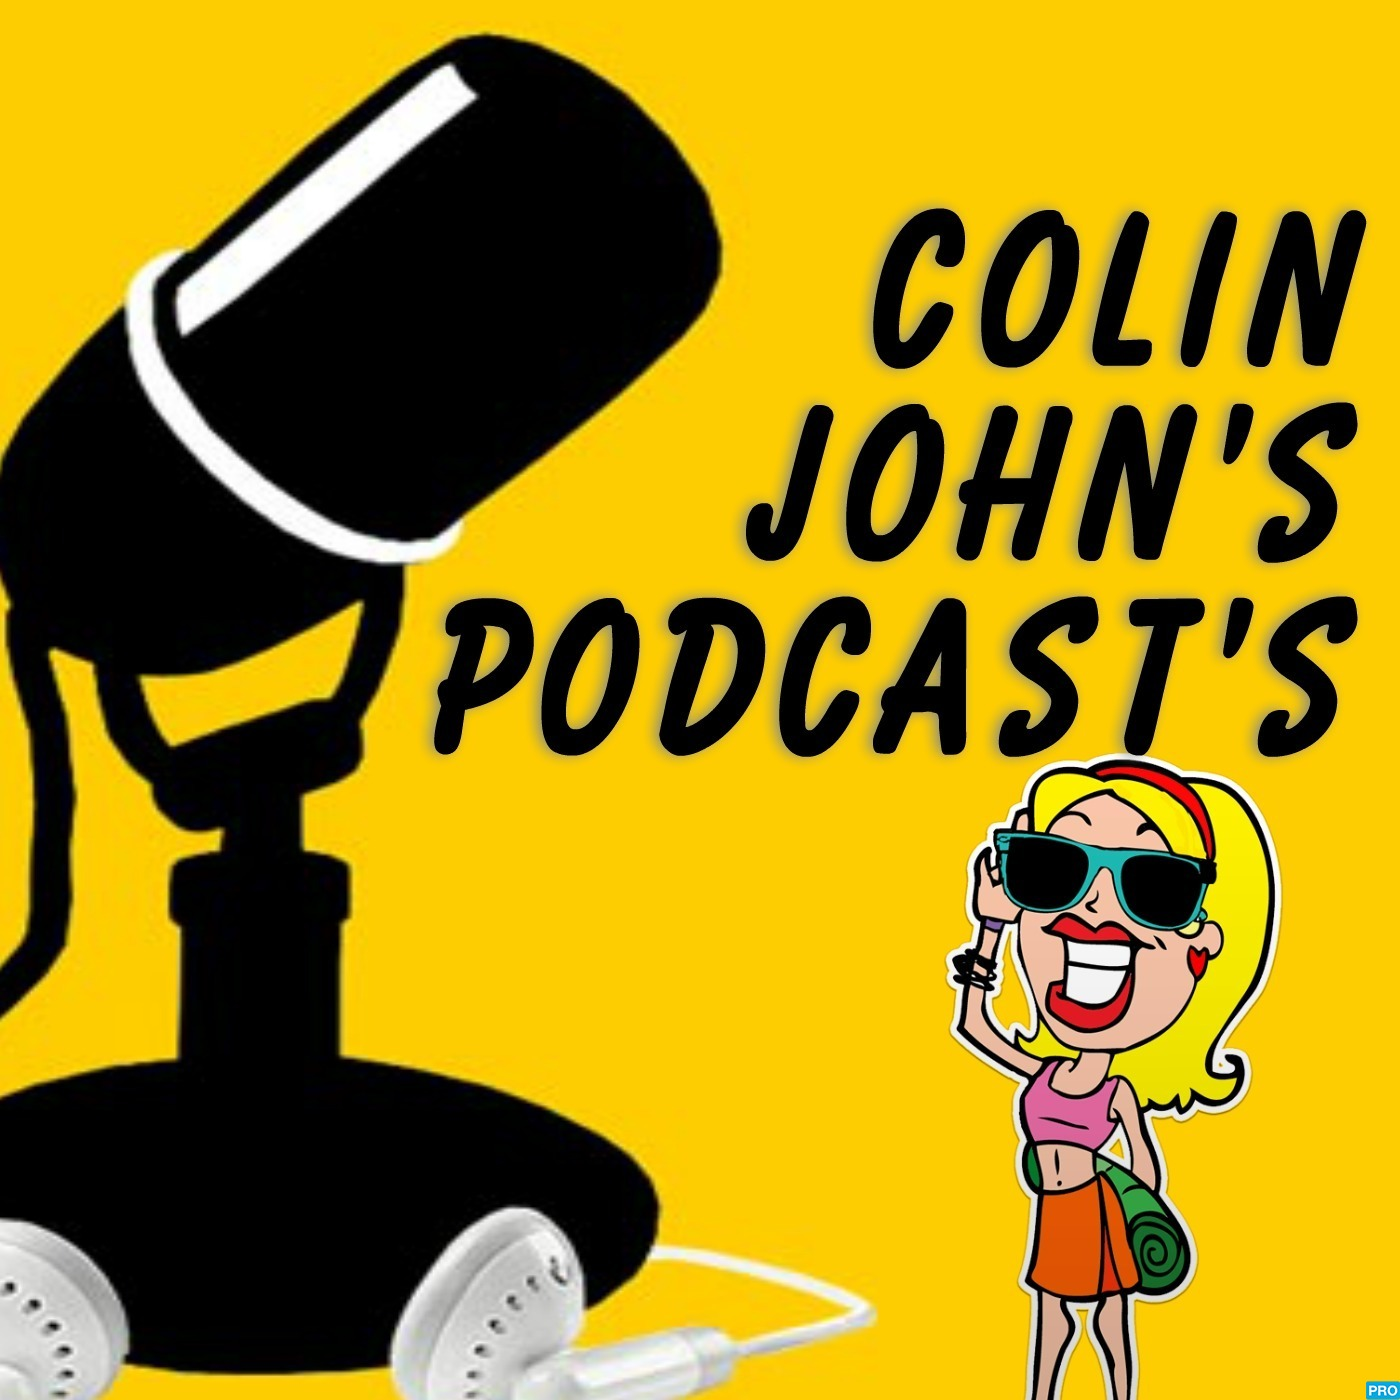 Colin John's Podcast